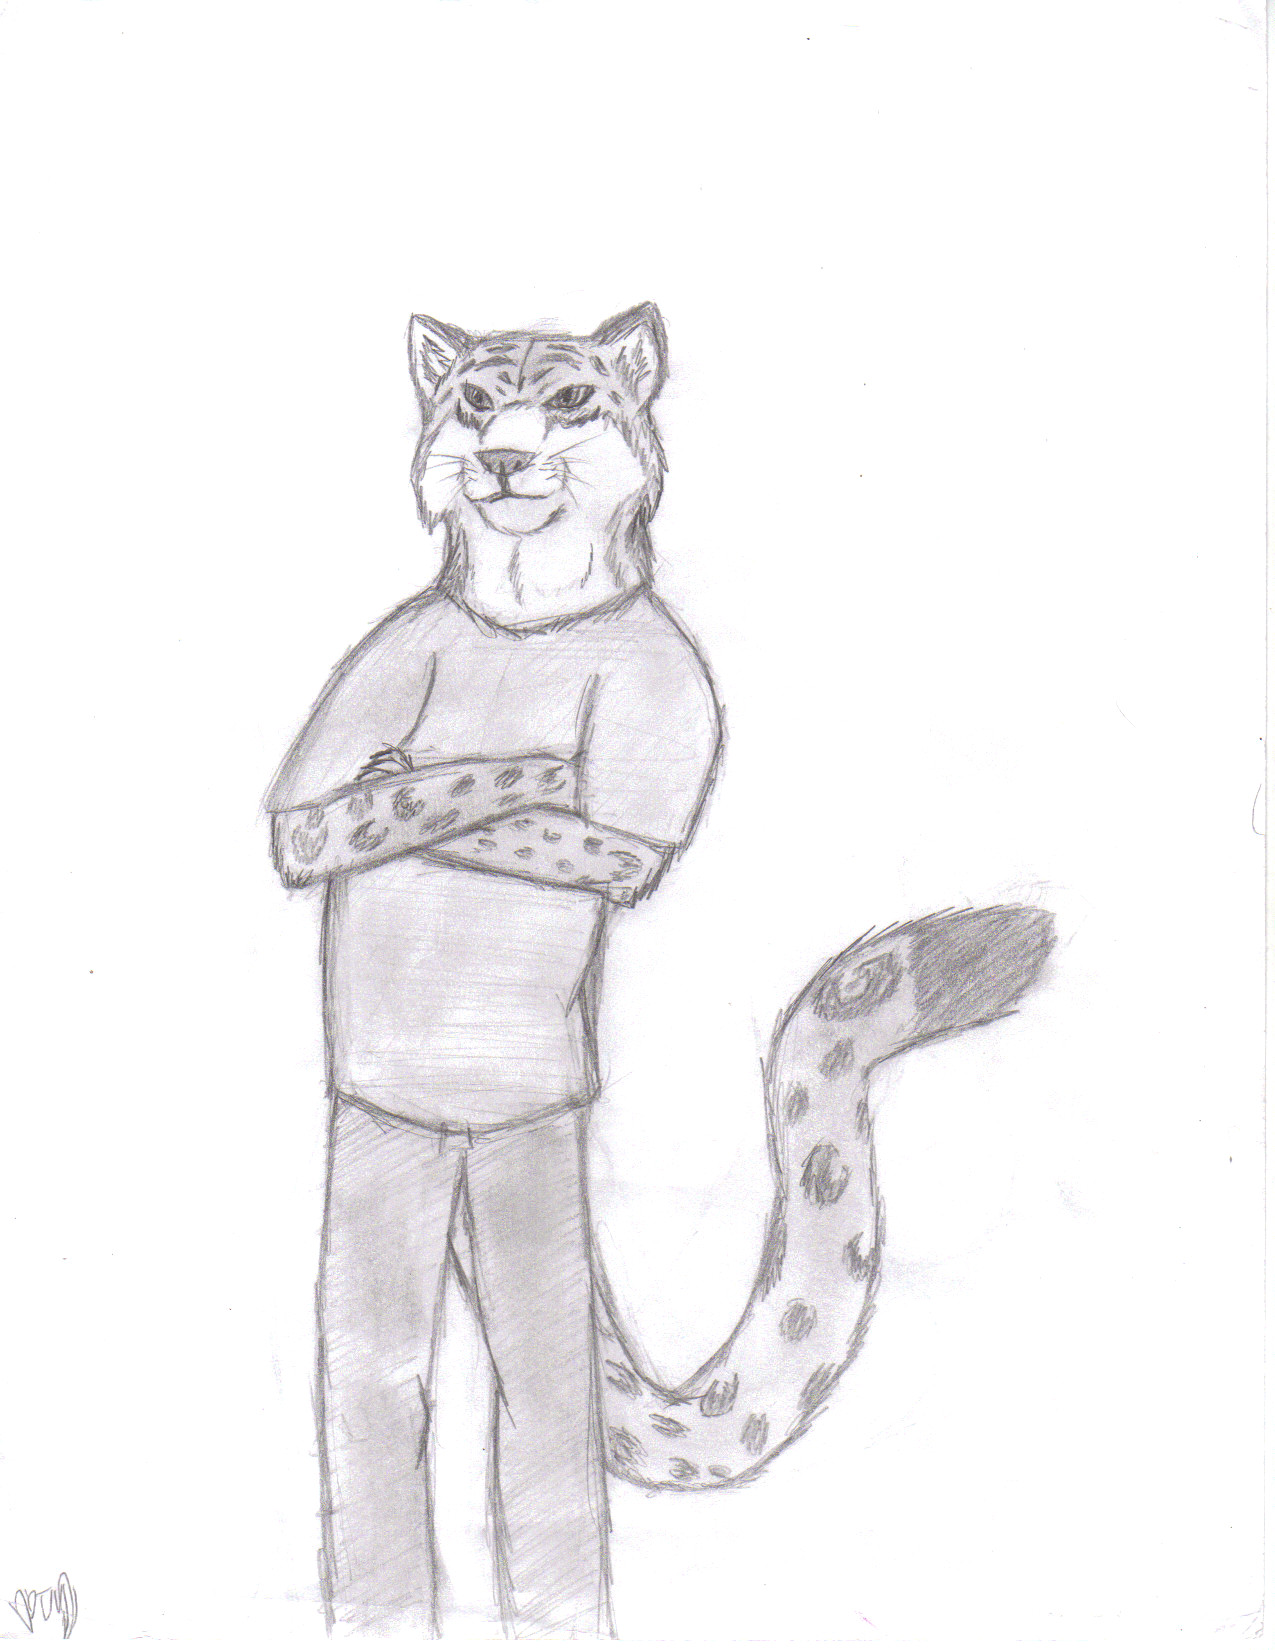 Anthro snow leopard male - photo#35